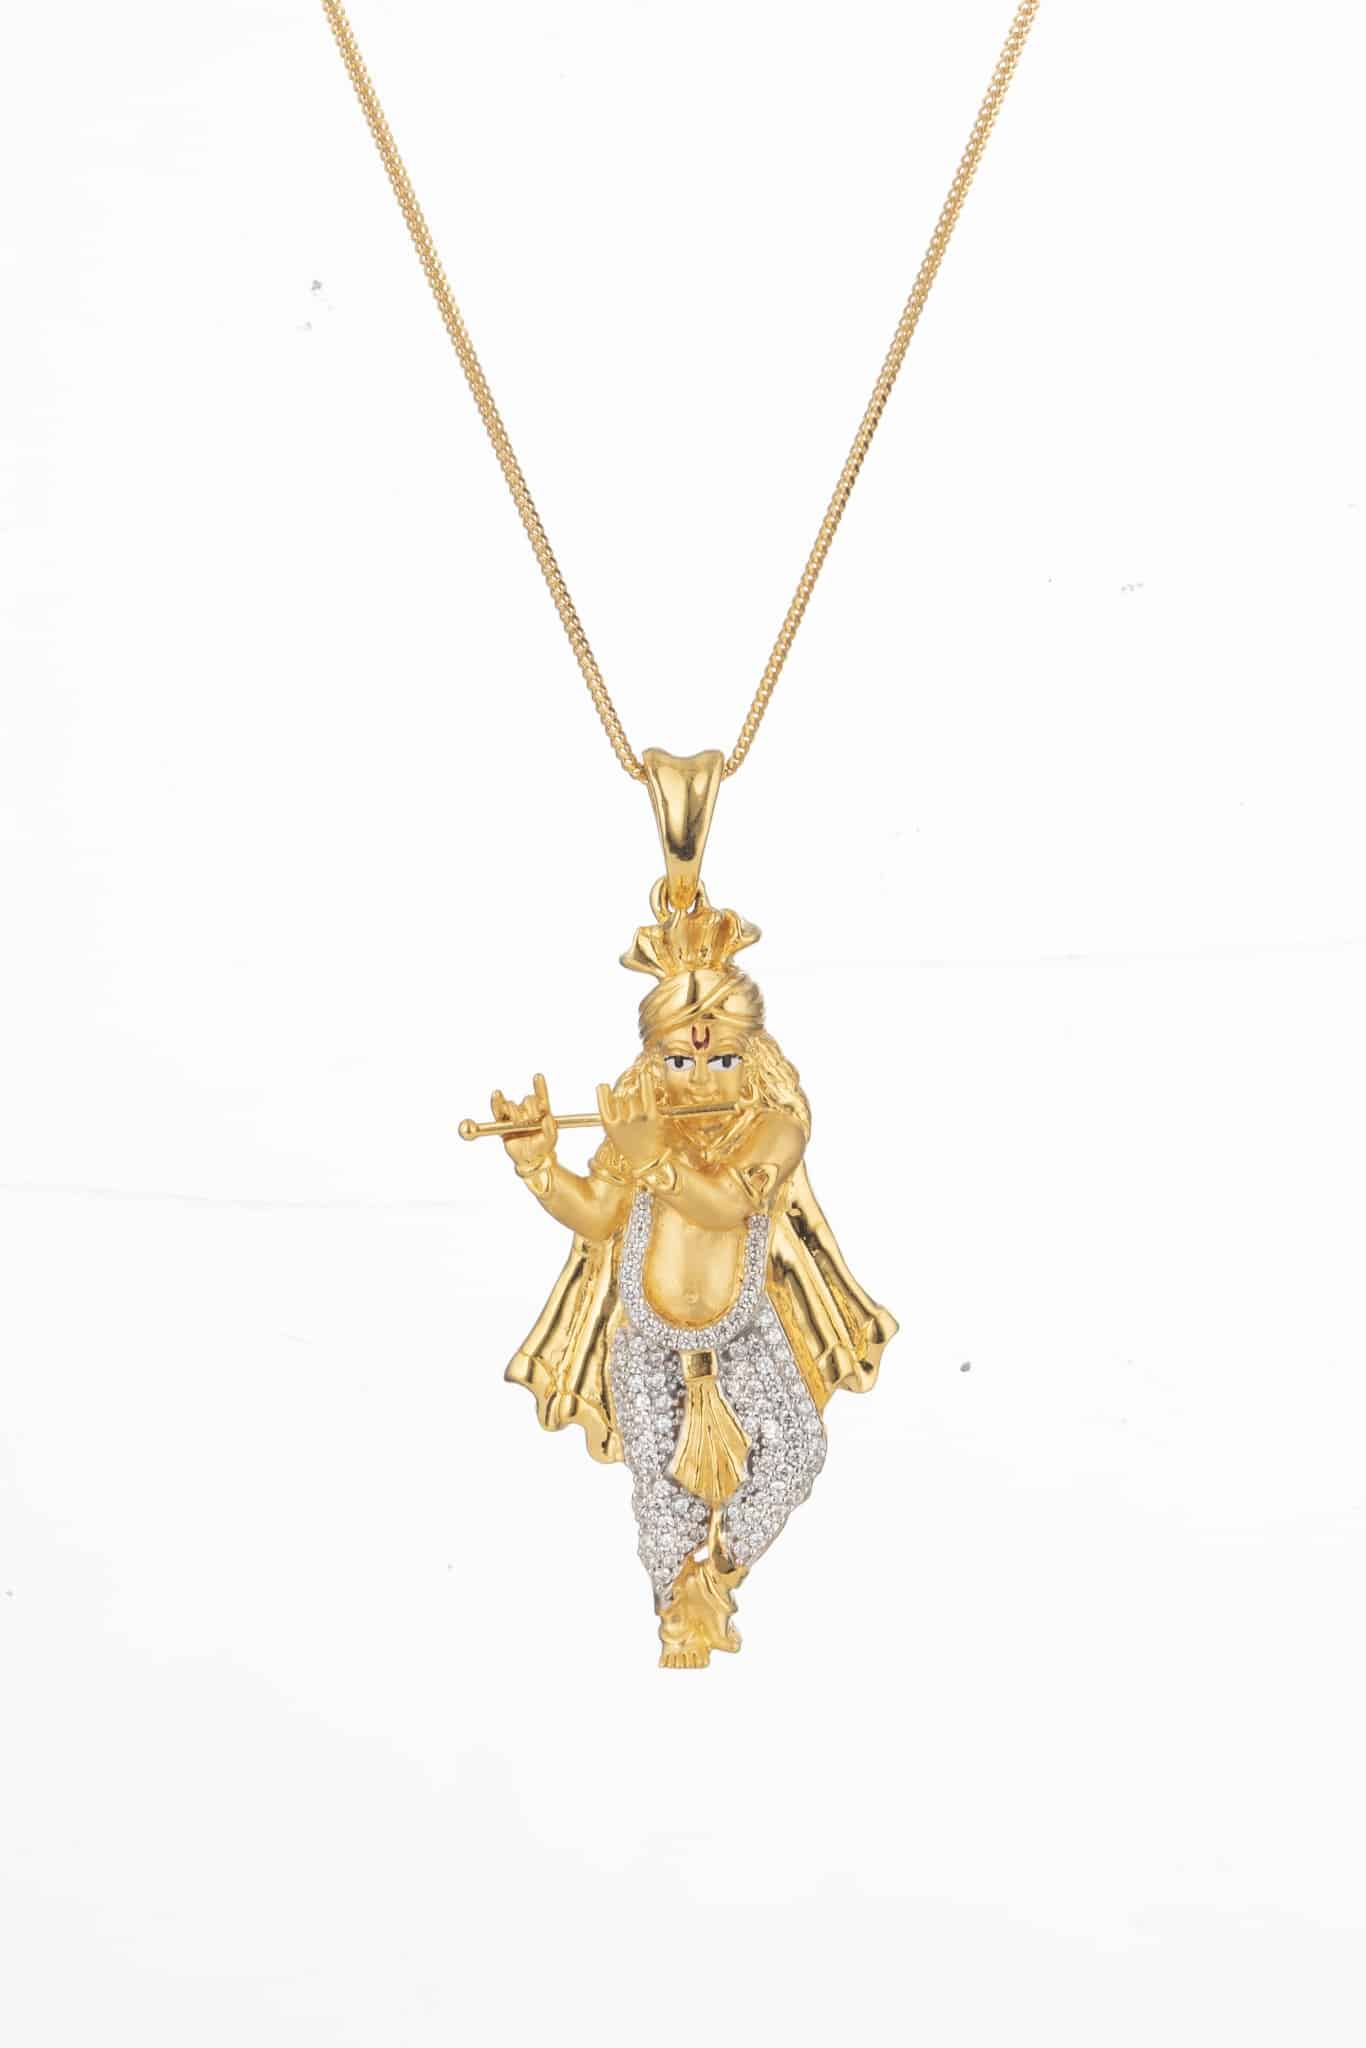 28751 - Lord Sri Krishna Gold Pendant